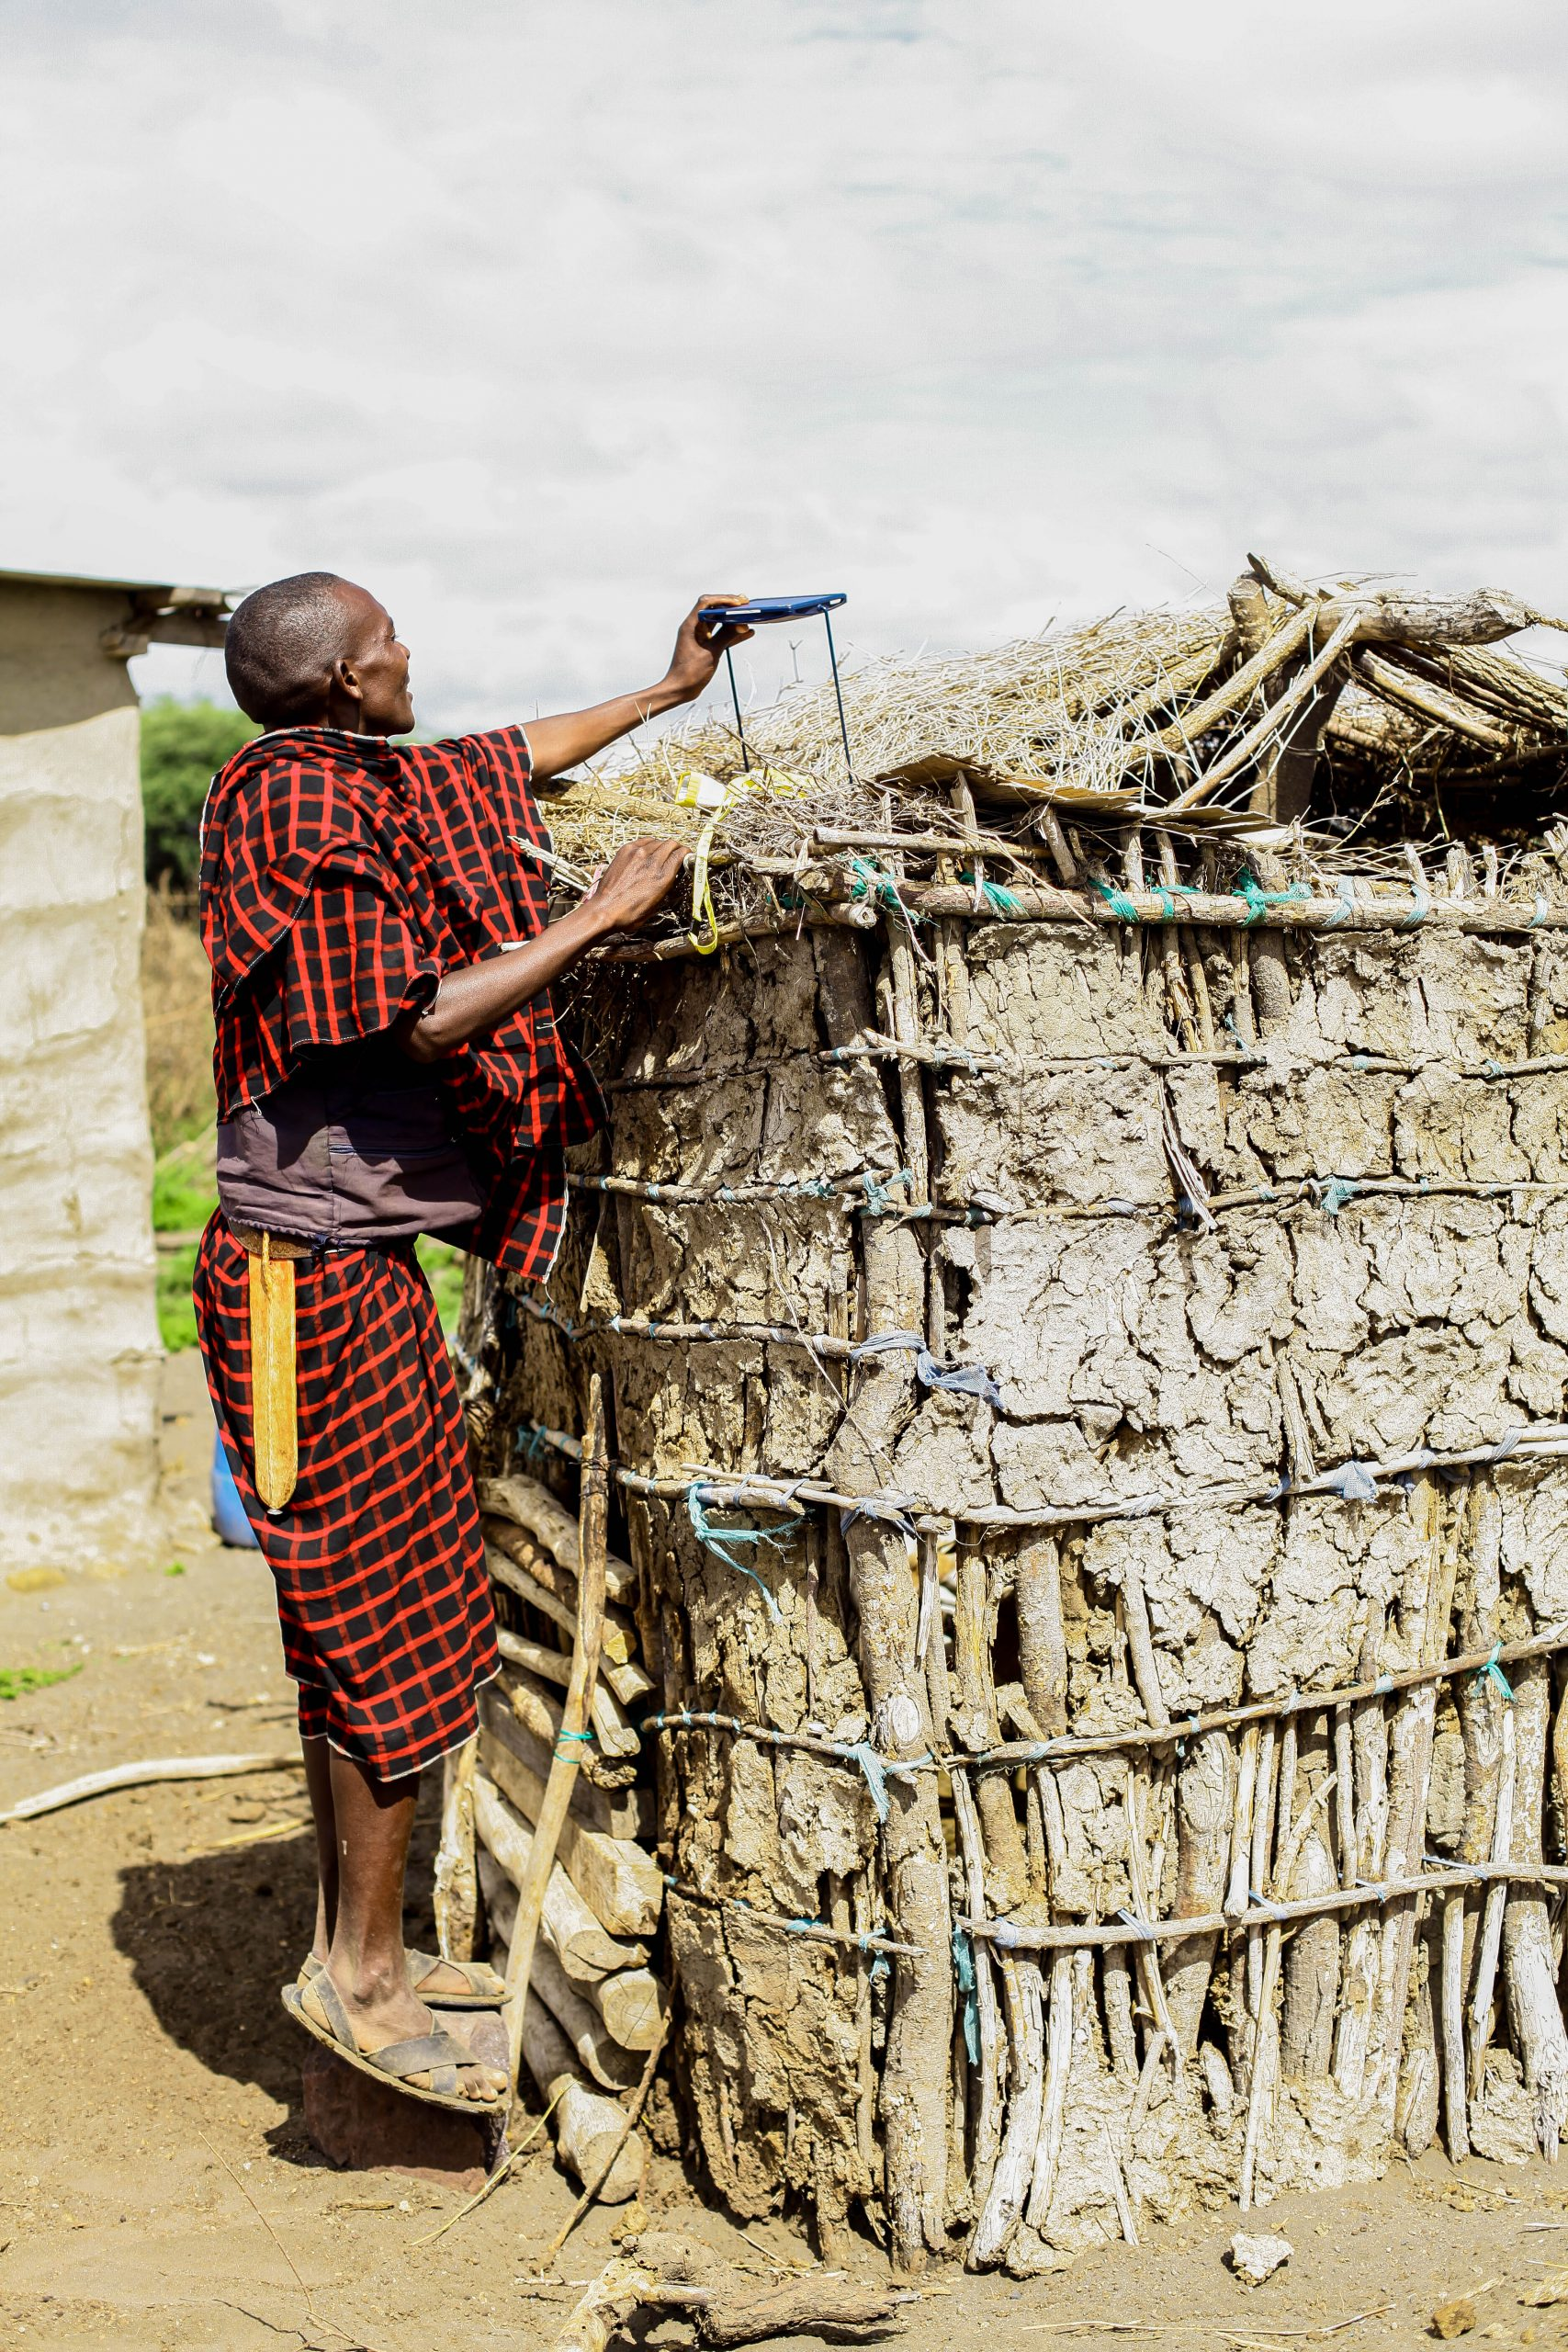 A woman in Tanzania charging her Little Sun solar charger to cook food for her family